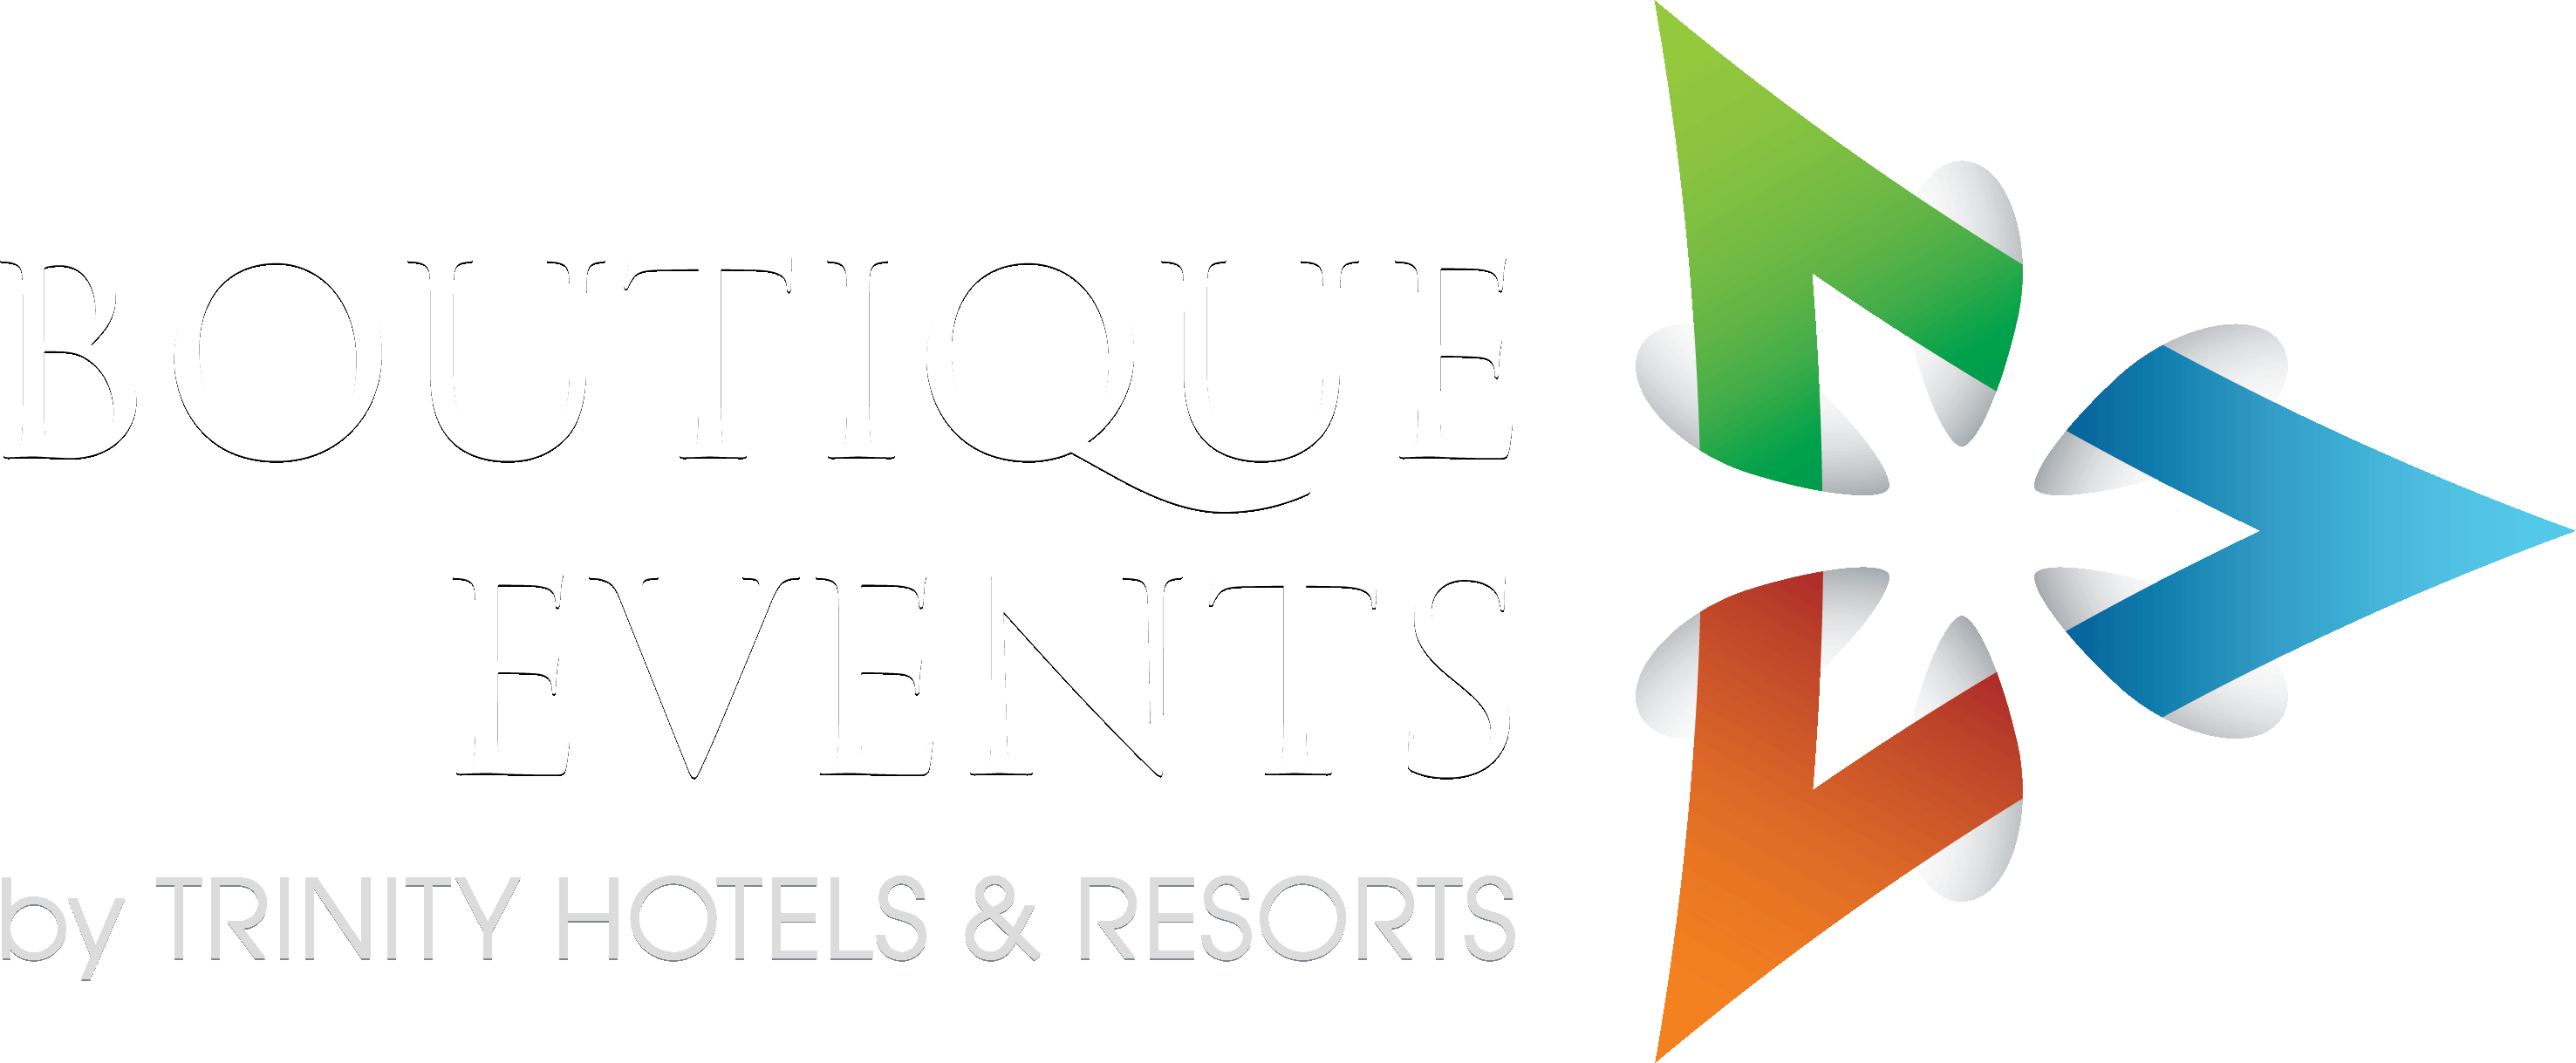 Boutique Events